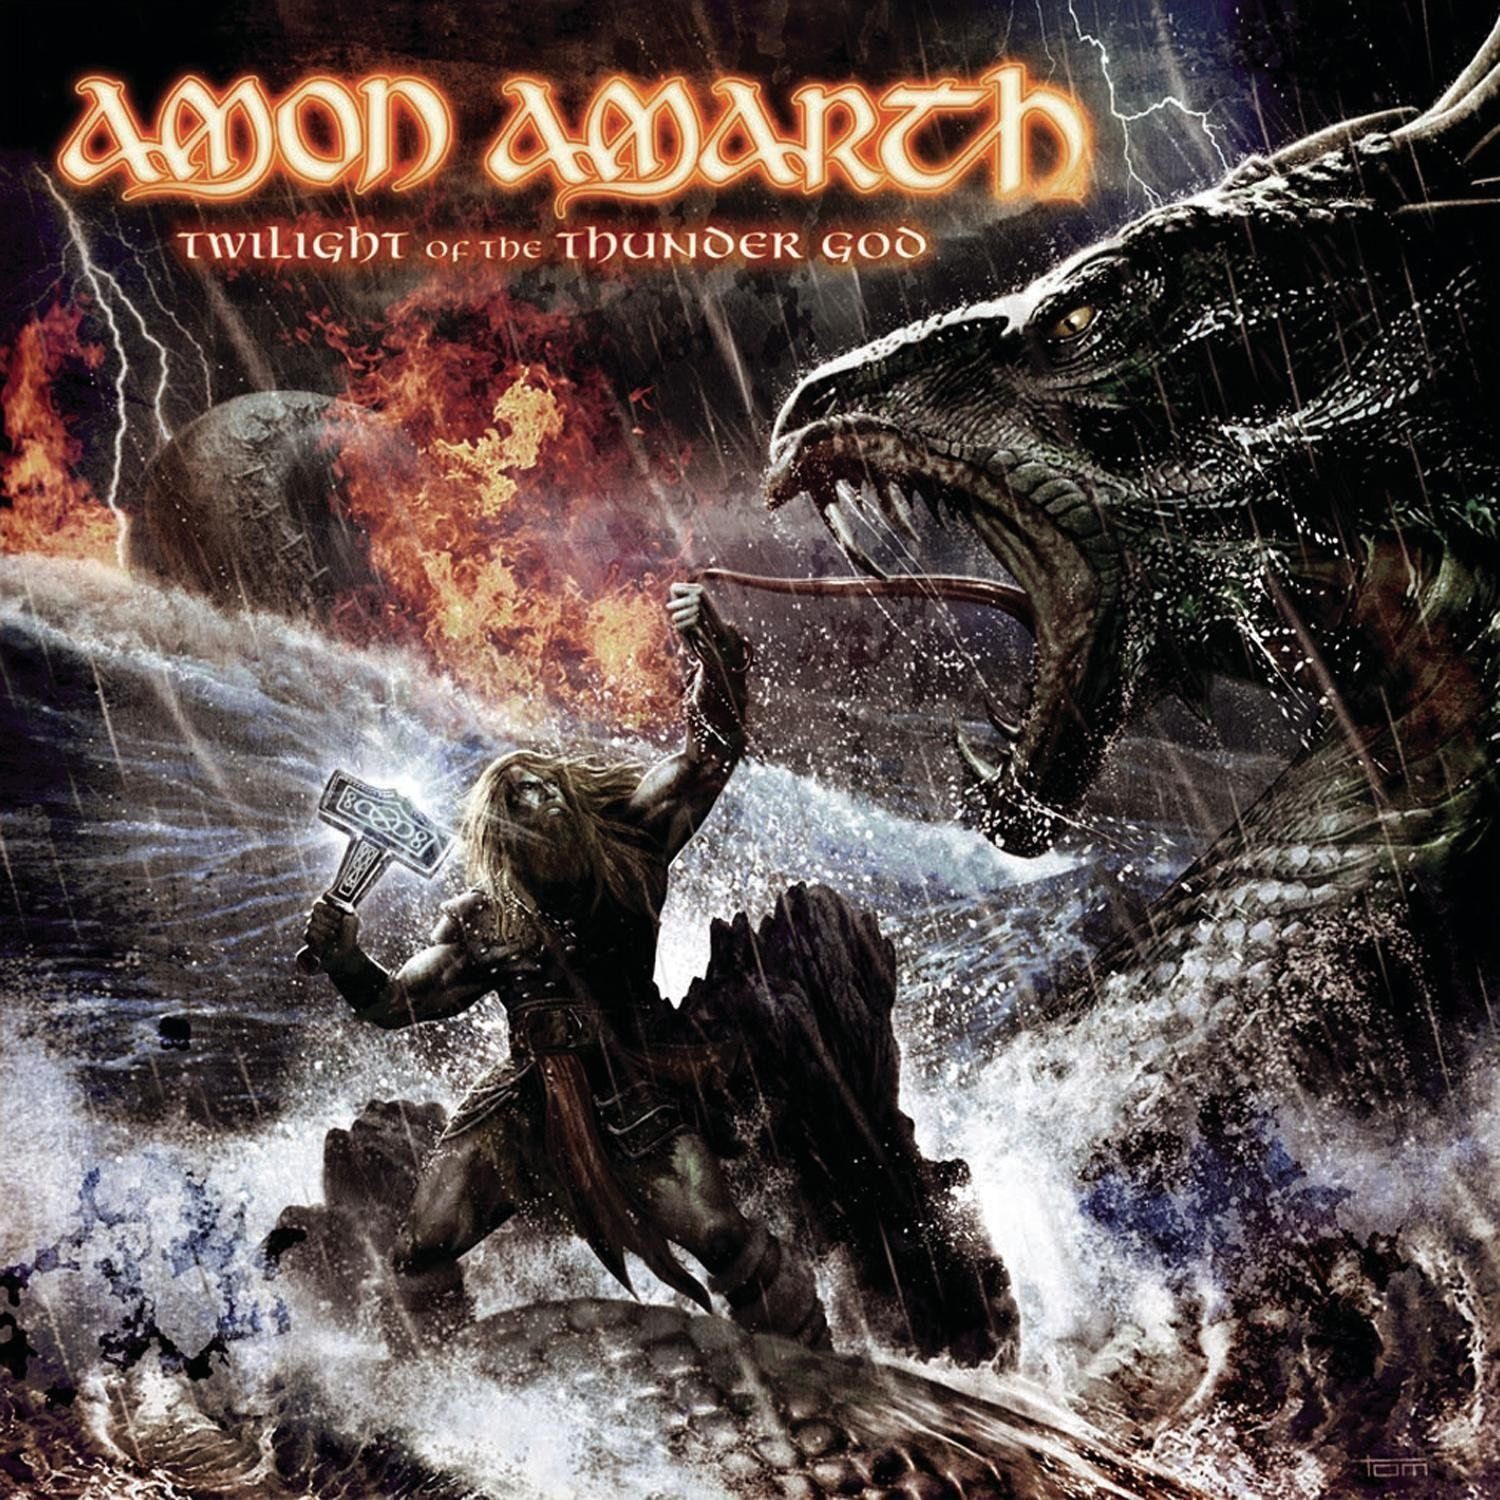 Amon Amarth - Twilight Of The Thunder God album cover